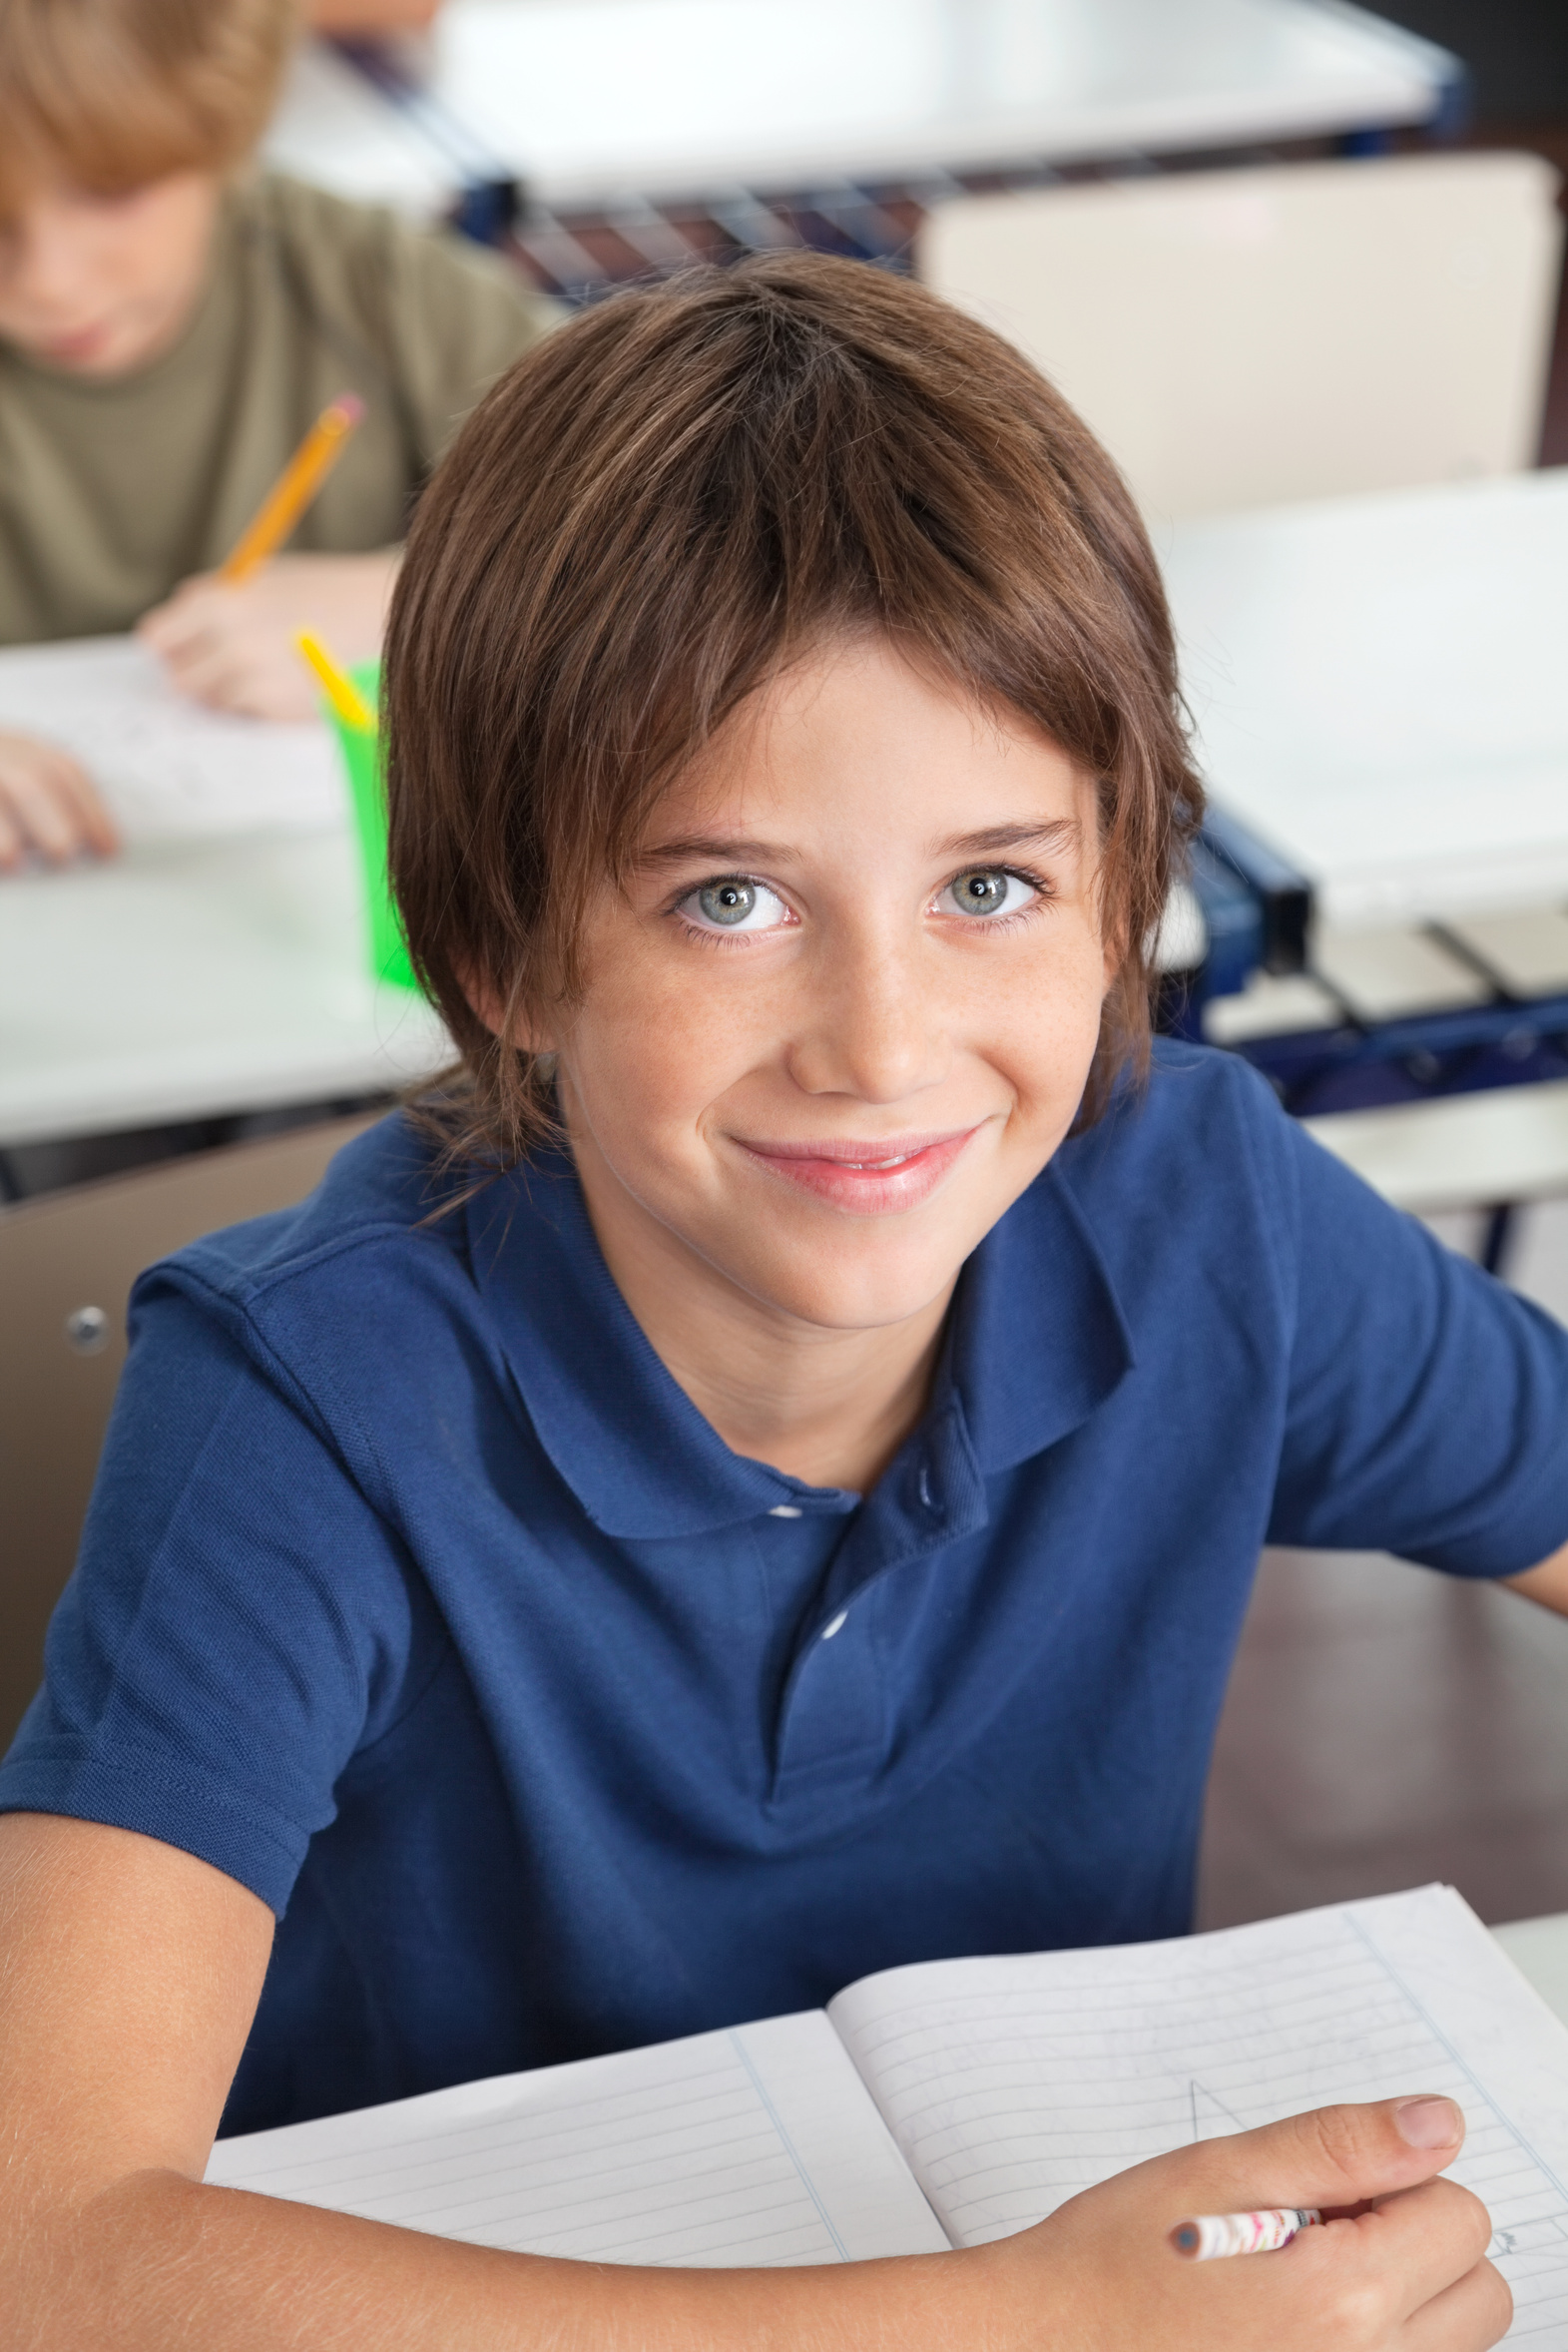 Cute Schoolboy Smiling In Classroom